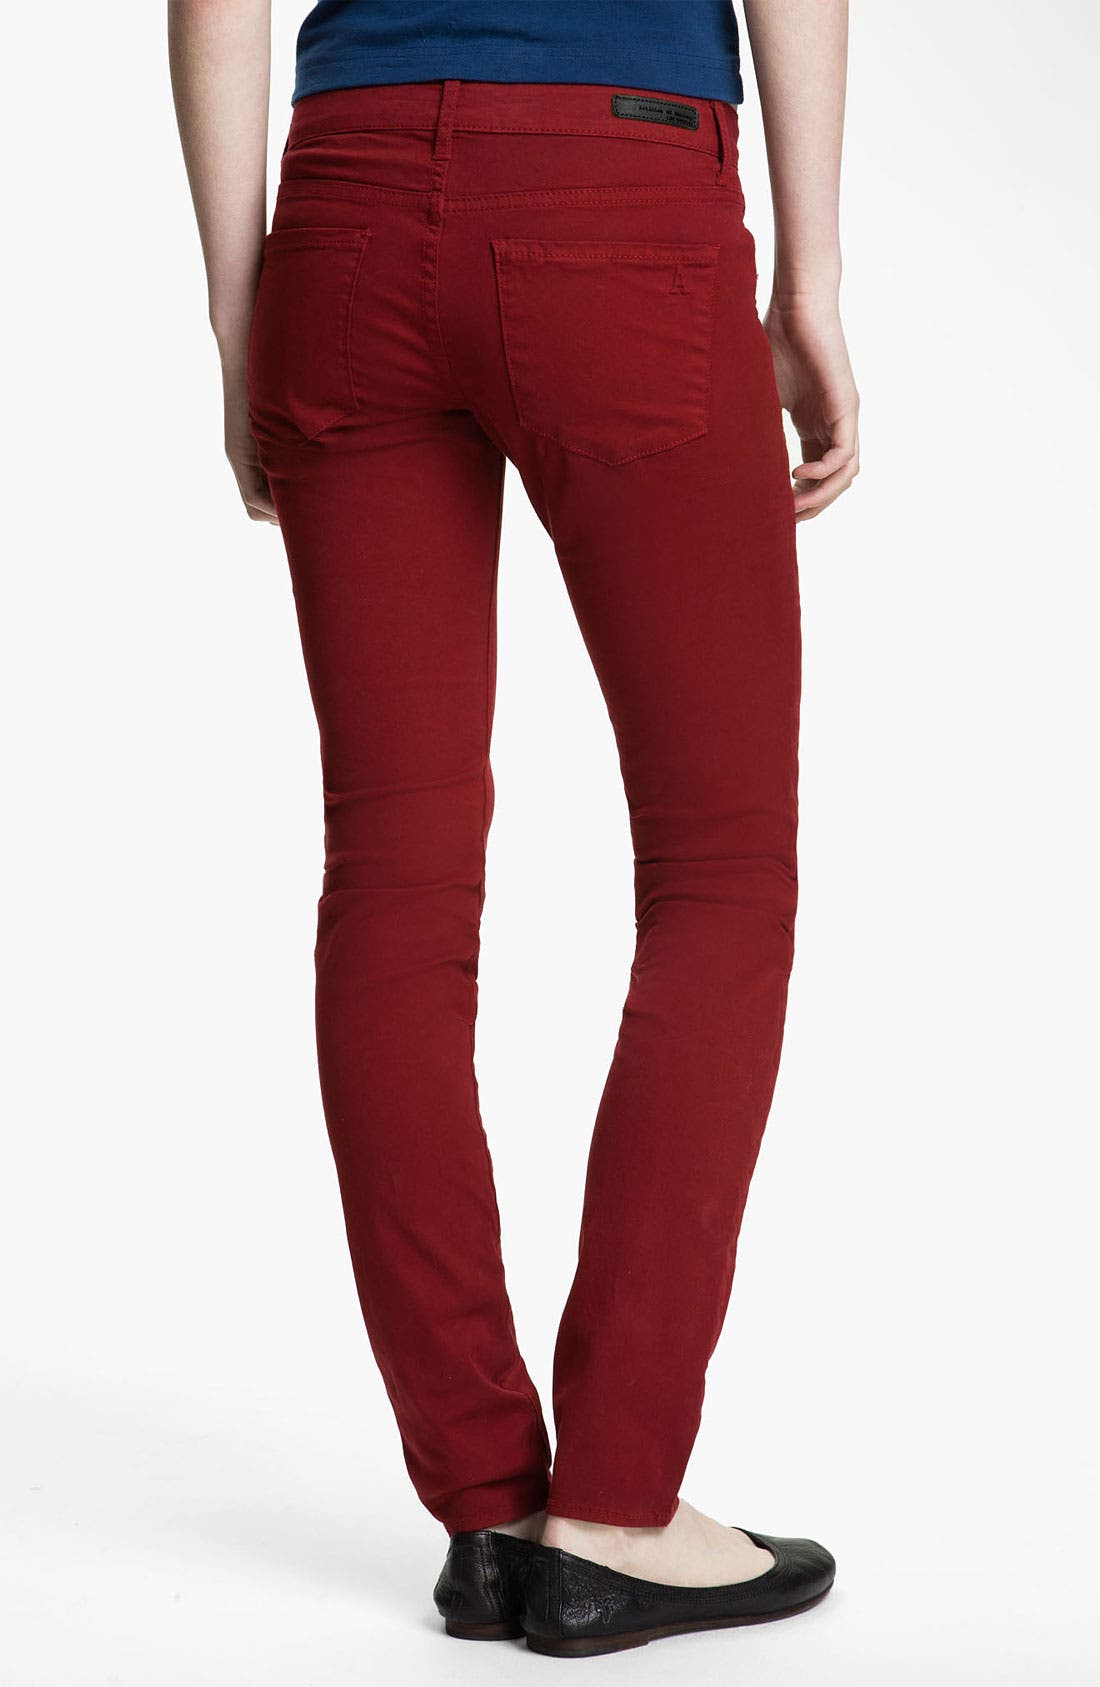 Main Image - Articles of Society 'Mya' Skinny Jeans (Scarlet) (Juniors)